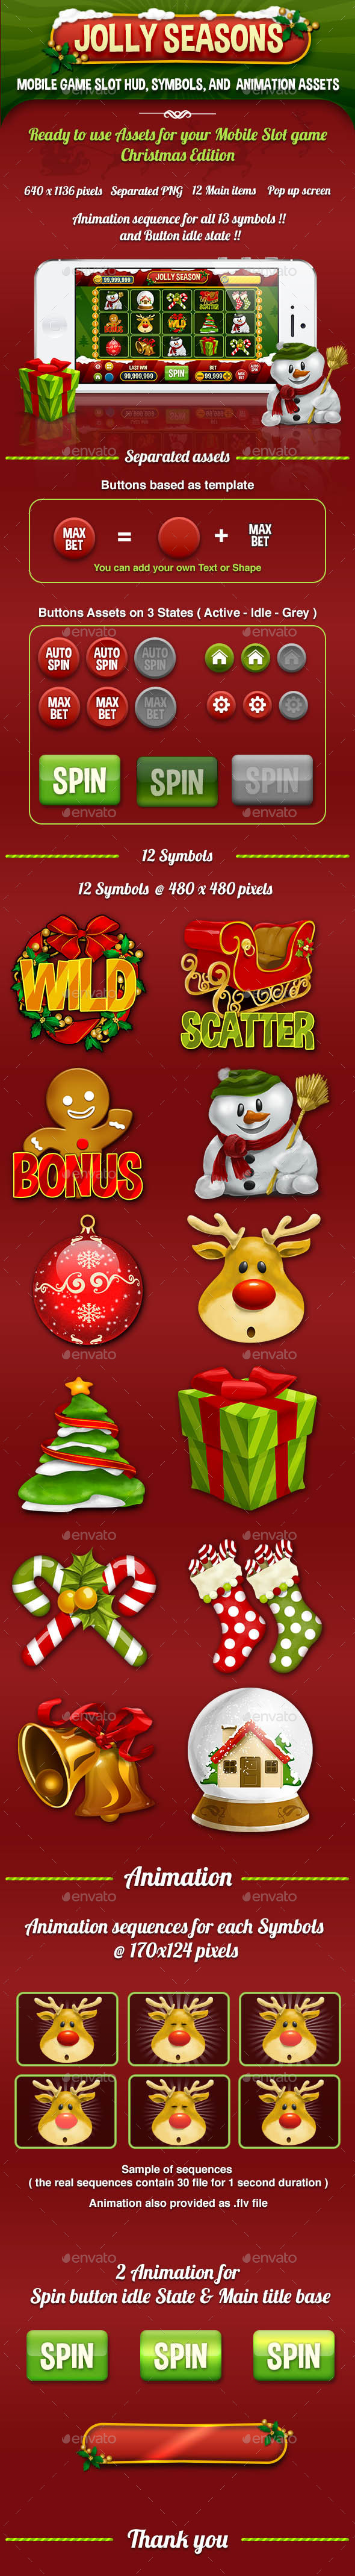 GraphicRiver Jolly Seasons Slot Mobile Game Kits Assets 9465606